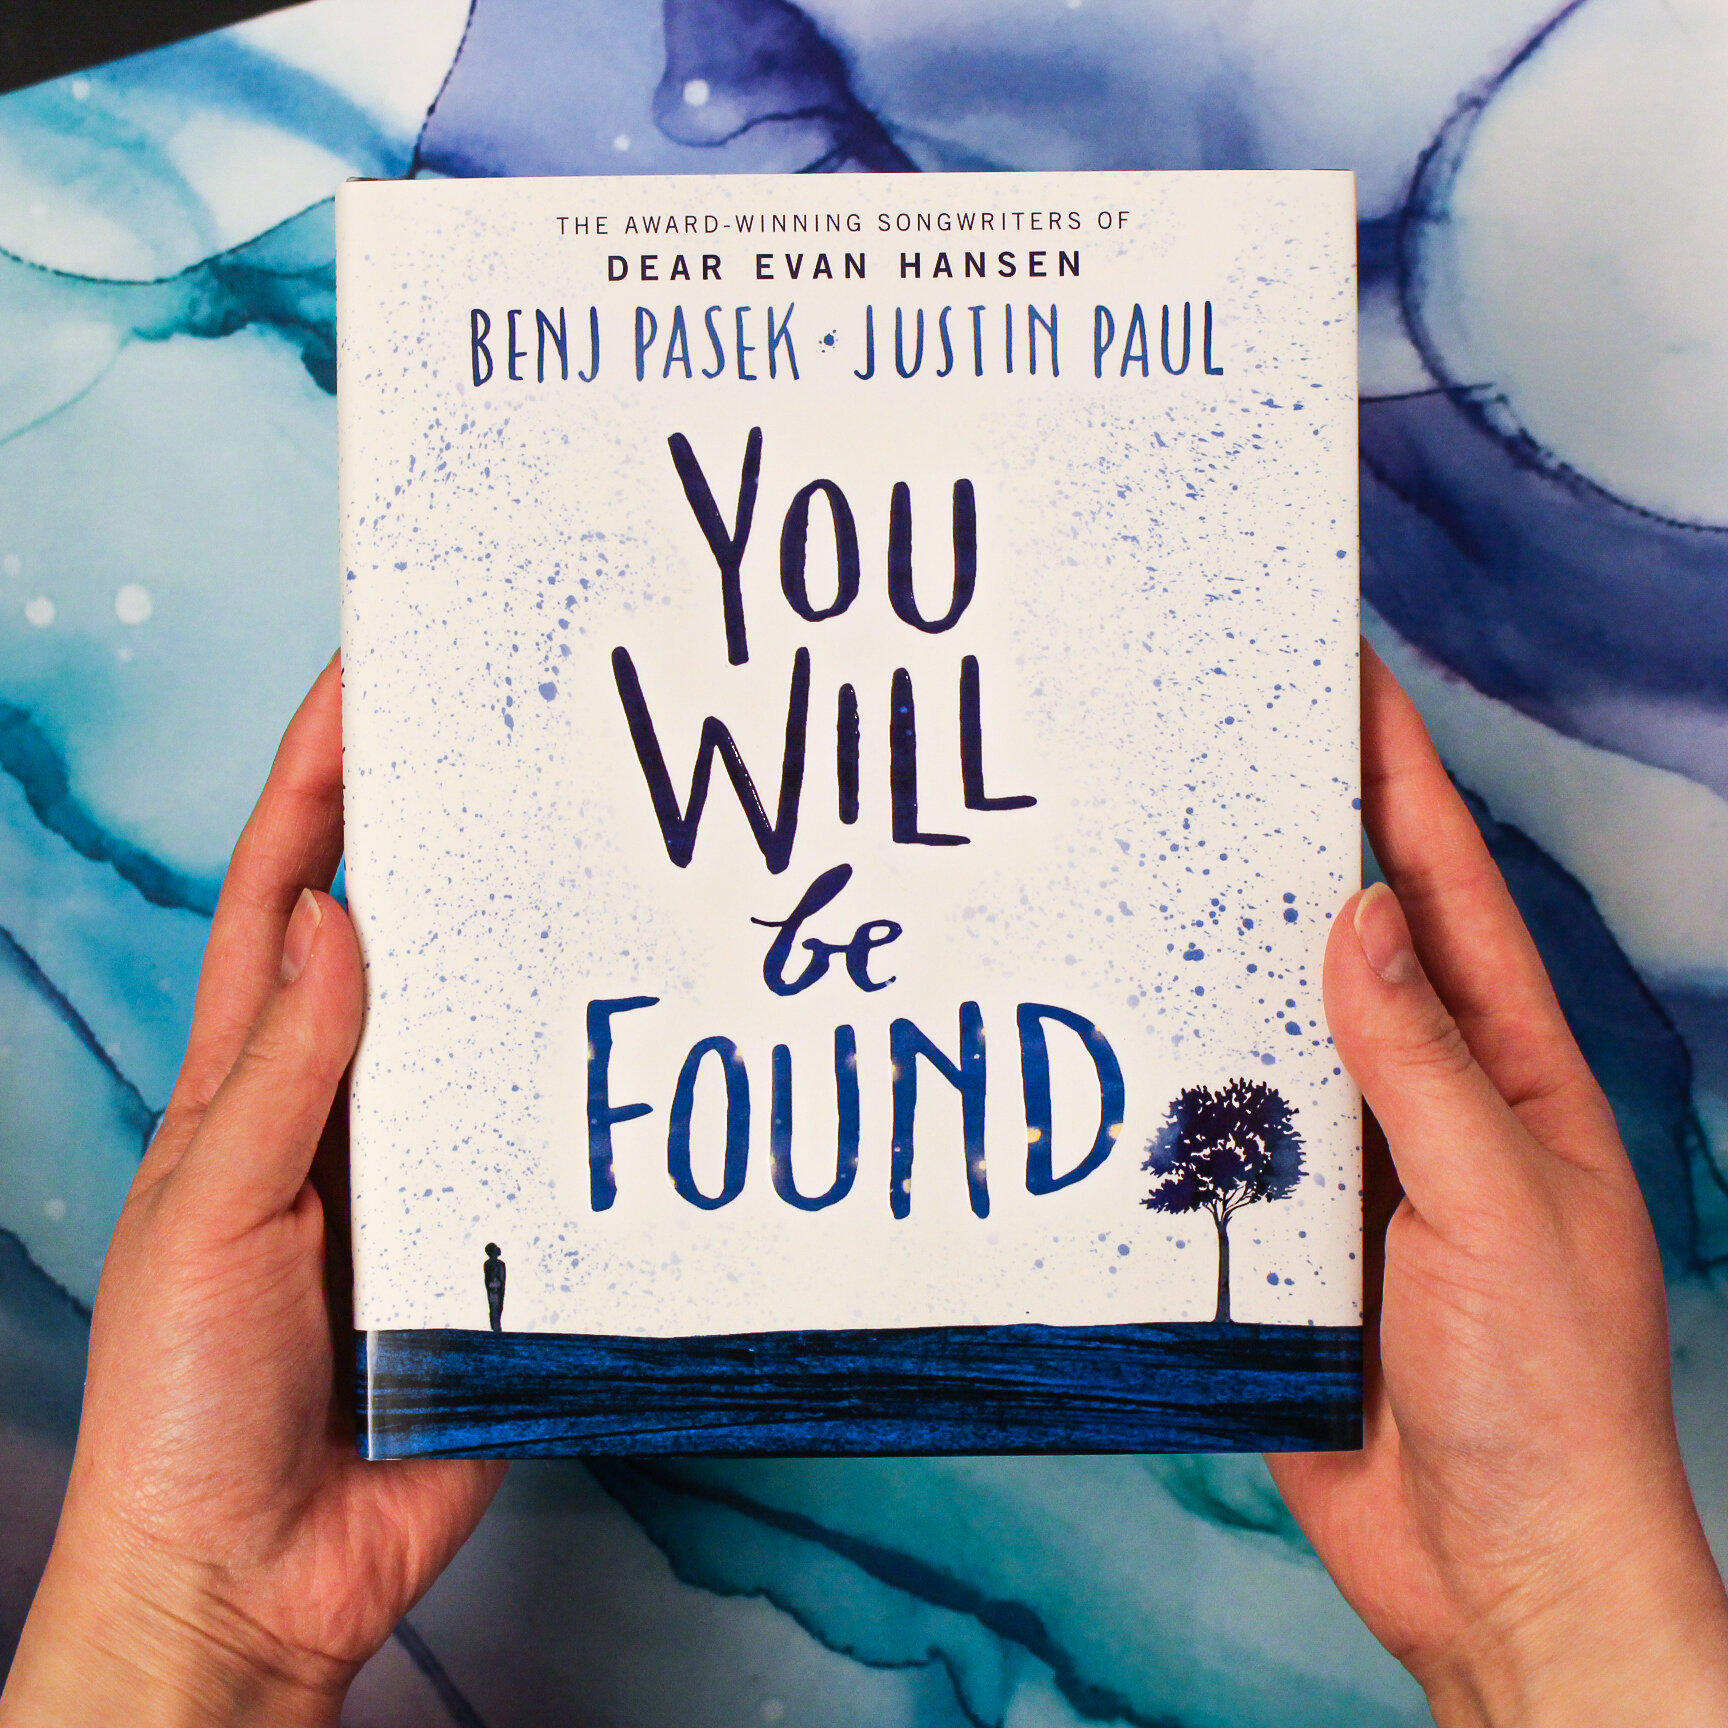 You Will Be Found By Benj Pasek And Justin Paul Novl Features song lyrics for byu vocal point's you will be found (from. benj pasek and justin paul novl